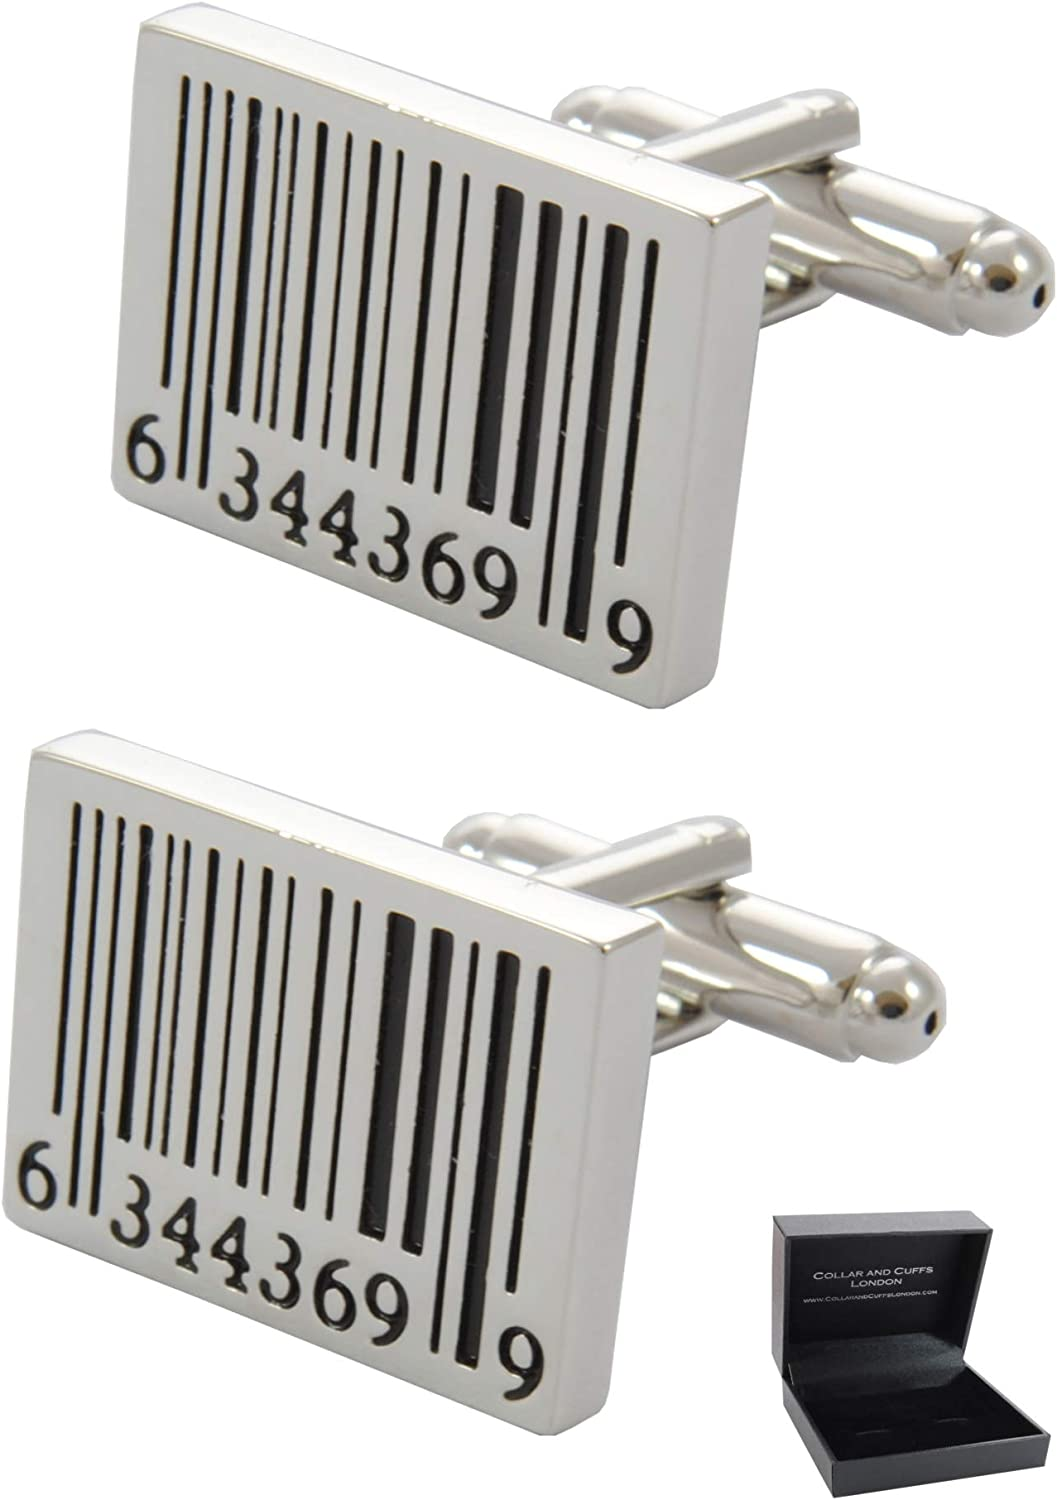 COLLAR AND CUFFS LONDON - Premium Cufflinks with Gift Box - Barcode - Shop Shopping Scan Oblong - Rectangle Oblong Shape - Silver and Black Colors